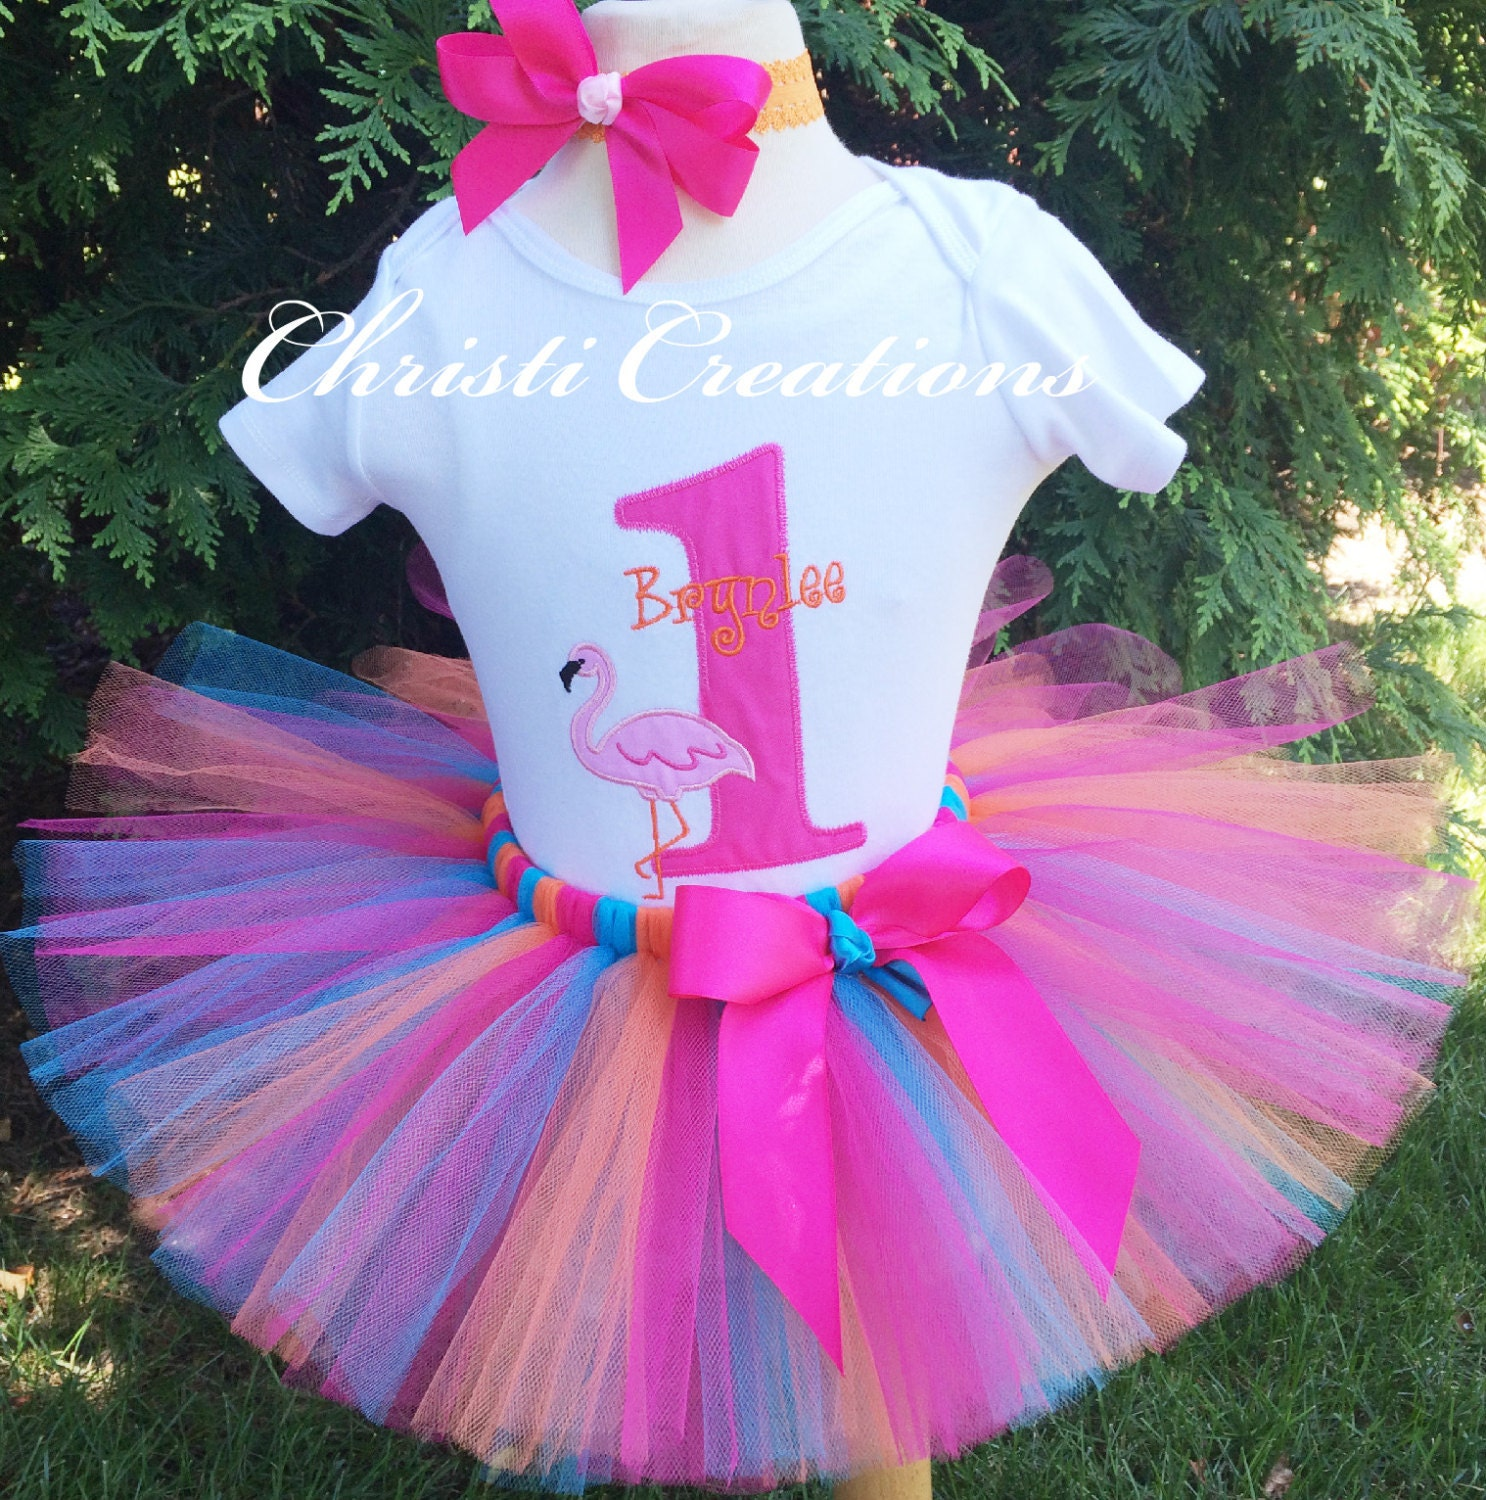 Birthday Party Outfit: Baby Girl 1st Birthday Tutu Outfit Flamingo Party Orange